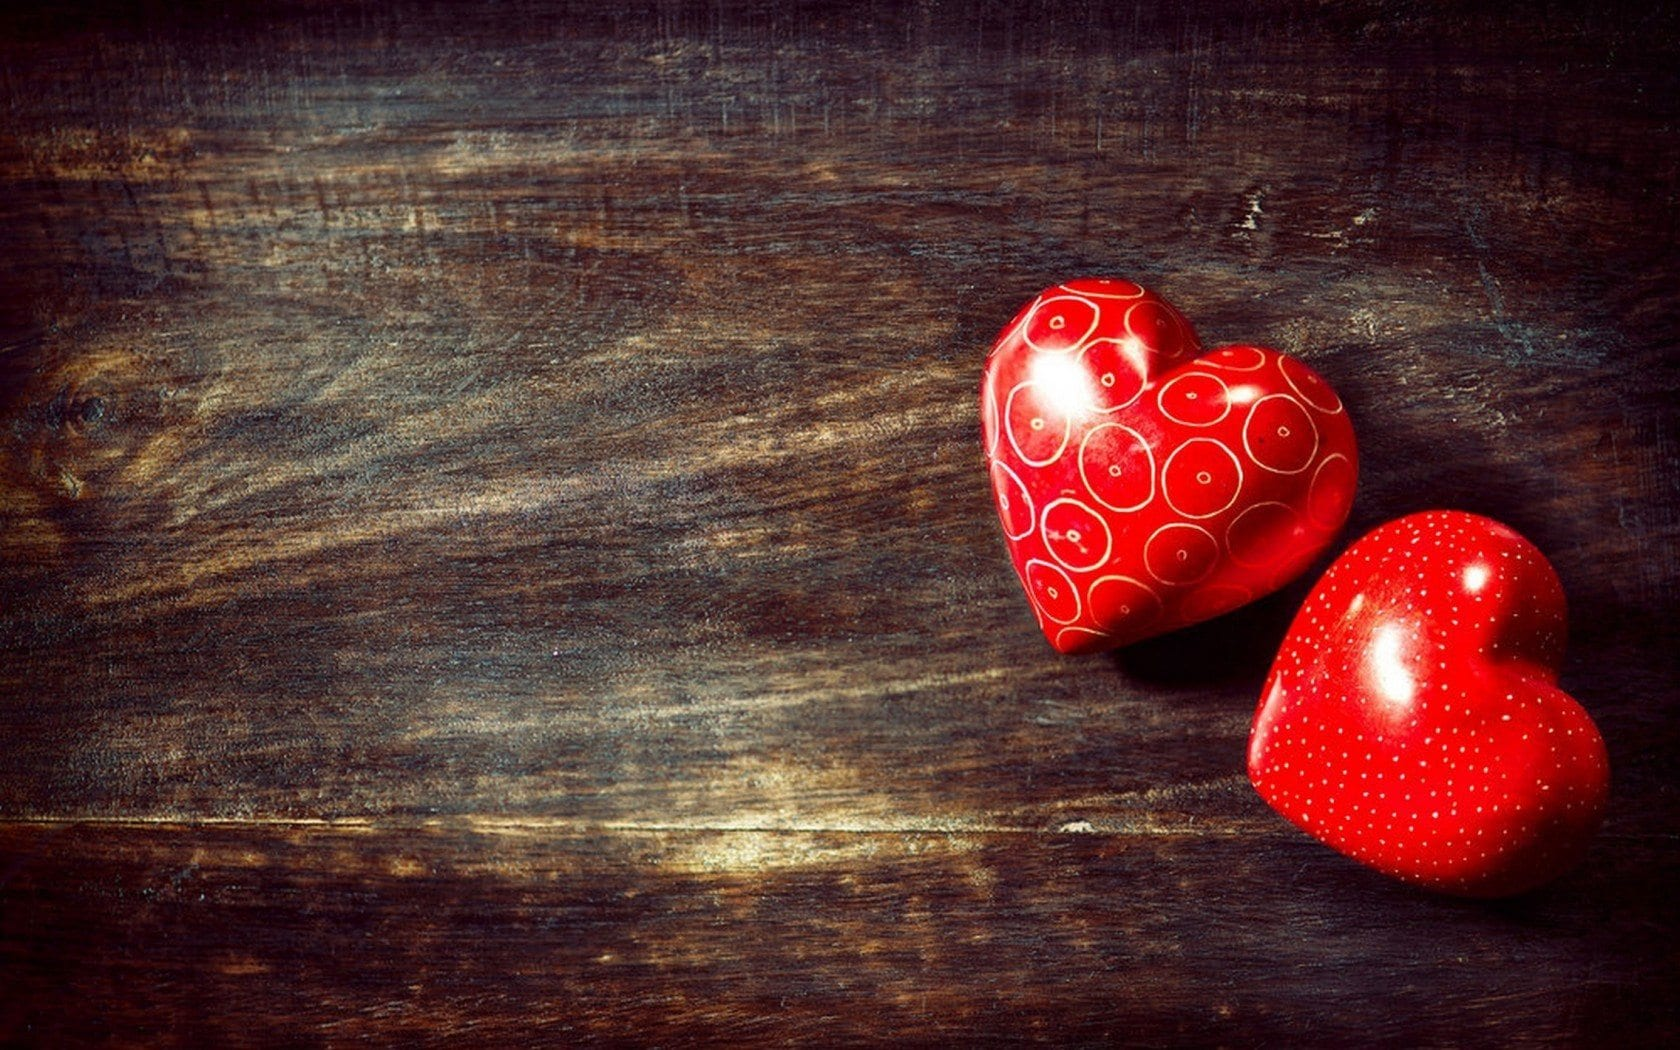 Love Wallpaper Photo Gallery : Love Images / Love HD Wallpaper